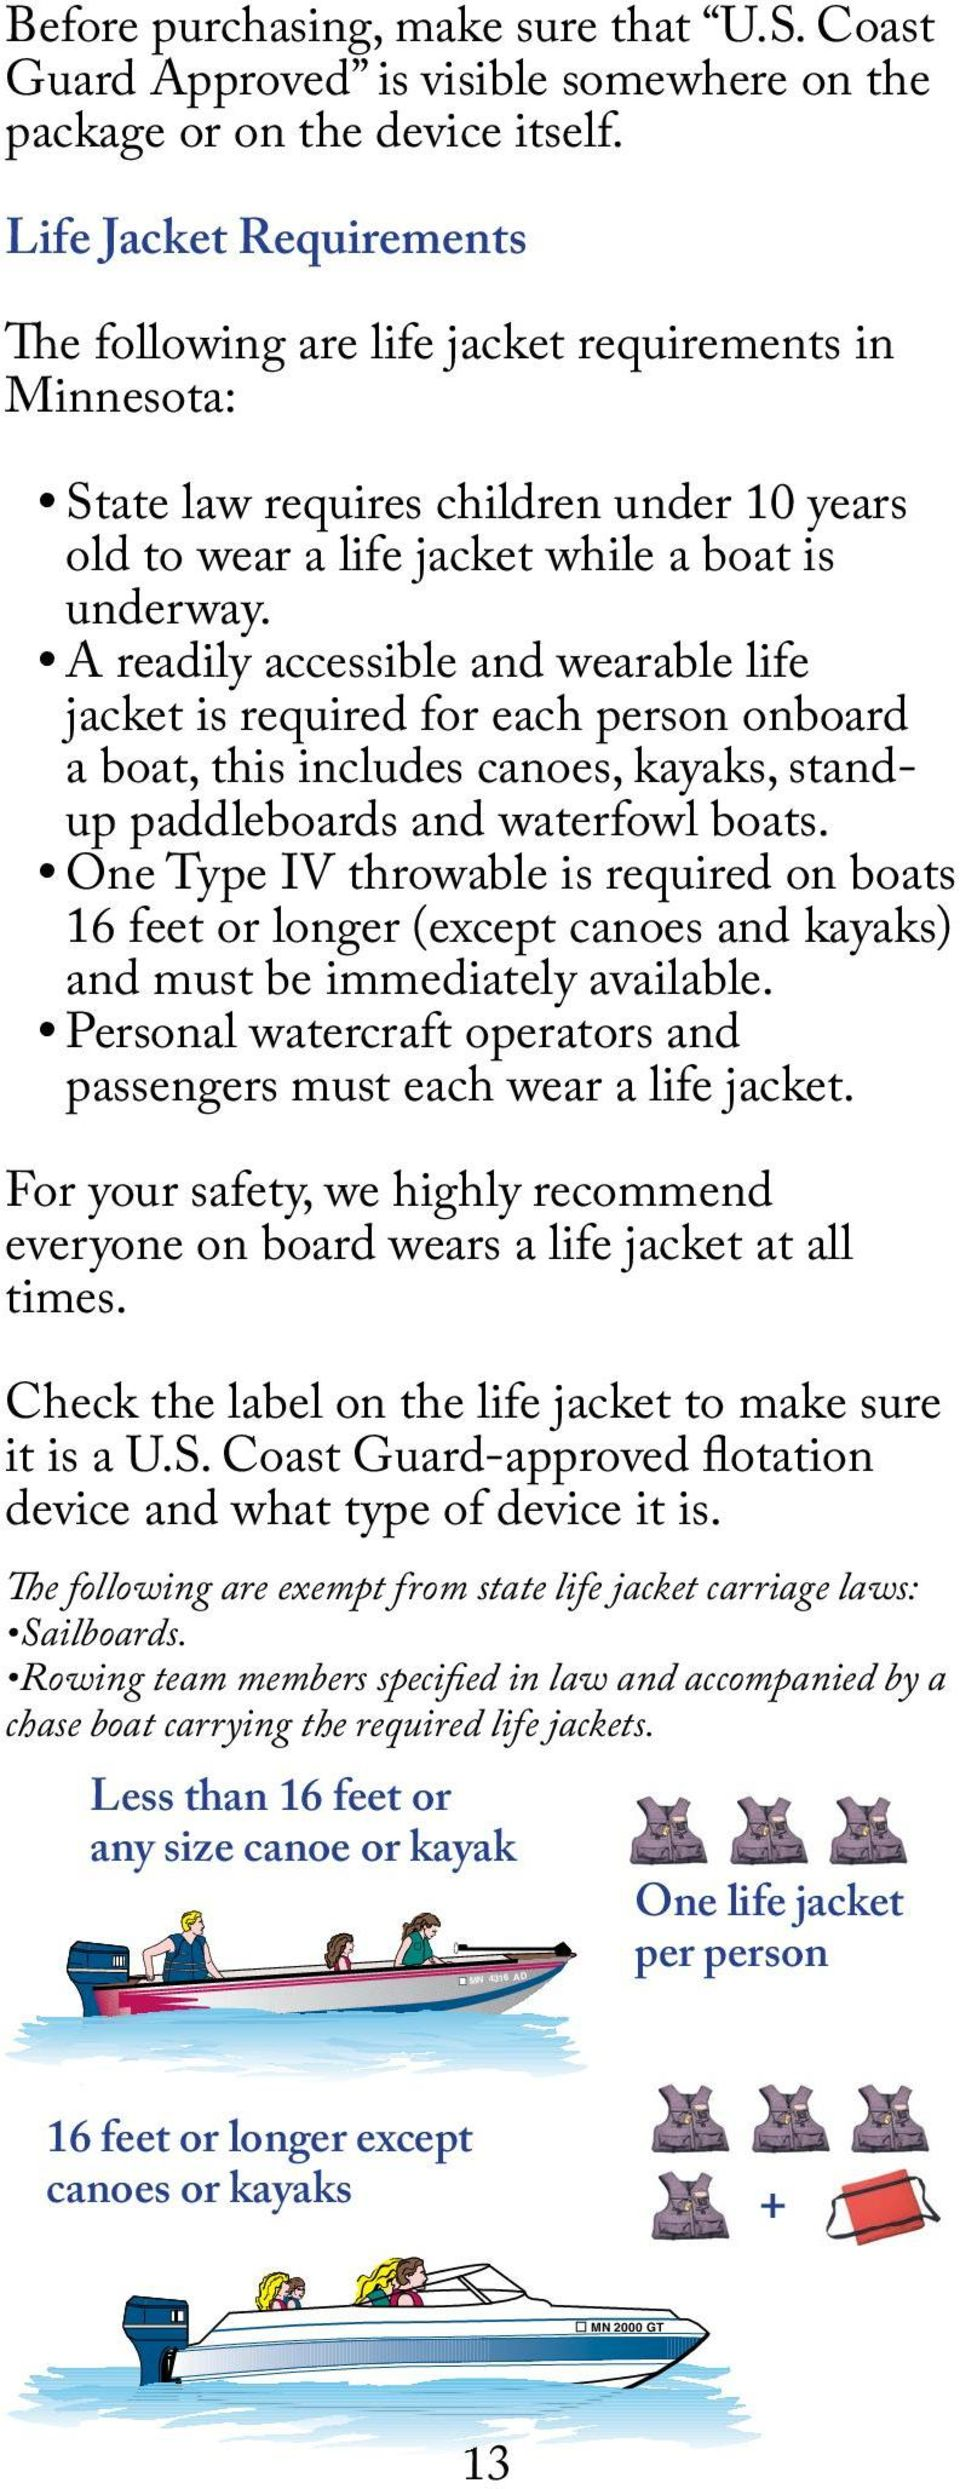 A readily accessible and wearable life jacket is required for each person onboard a boat, this includes canoes, kayaks, standup paddleboards and waterfowl boats.